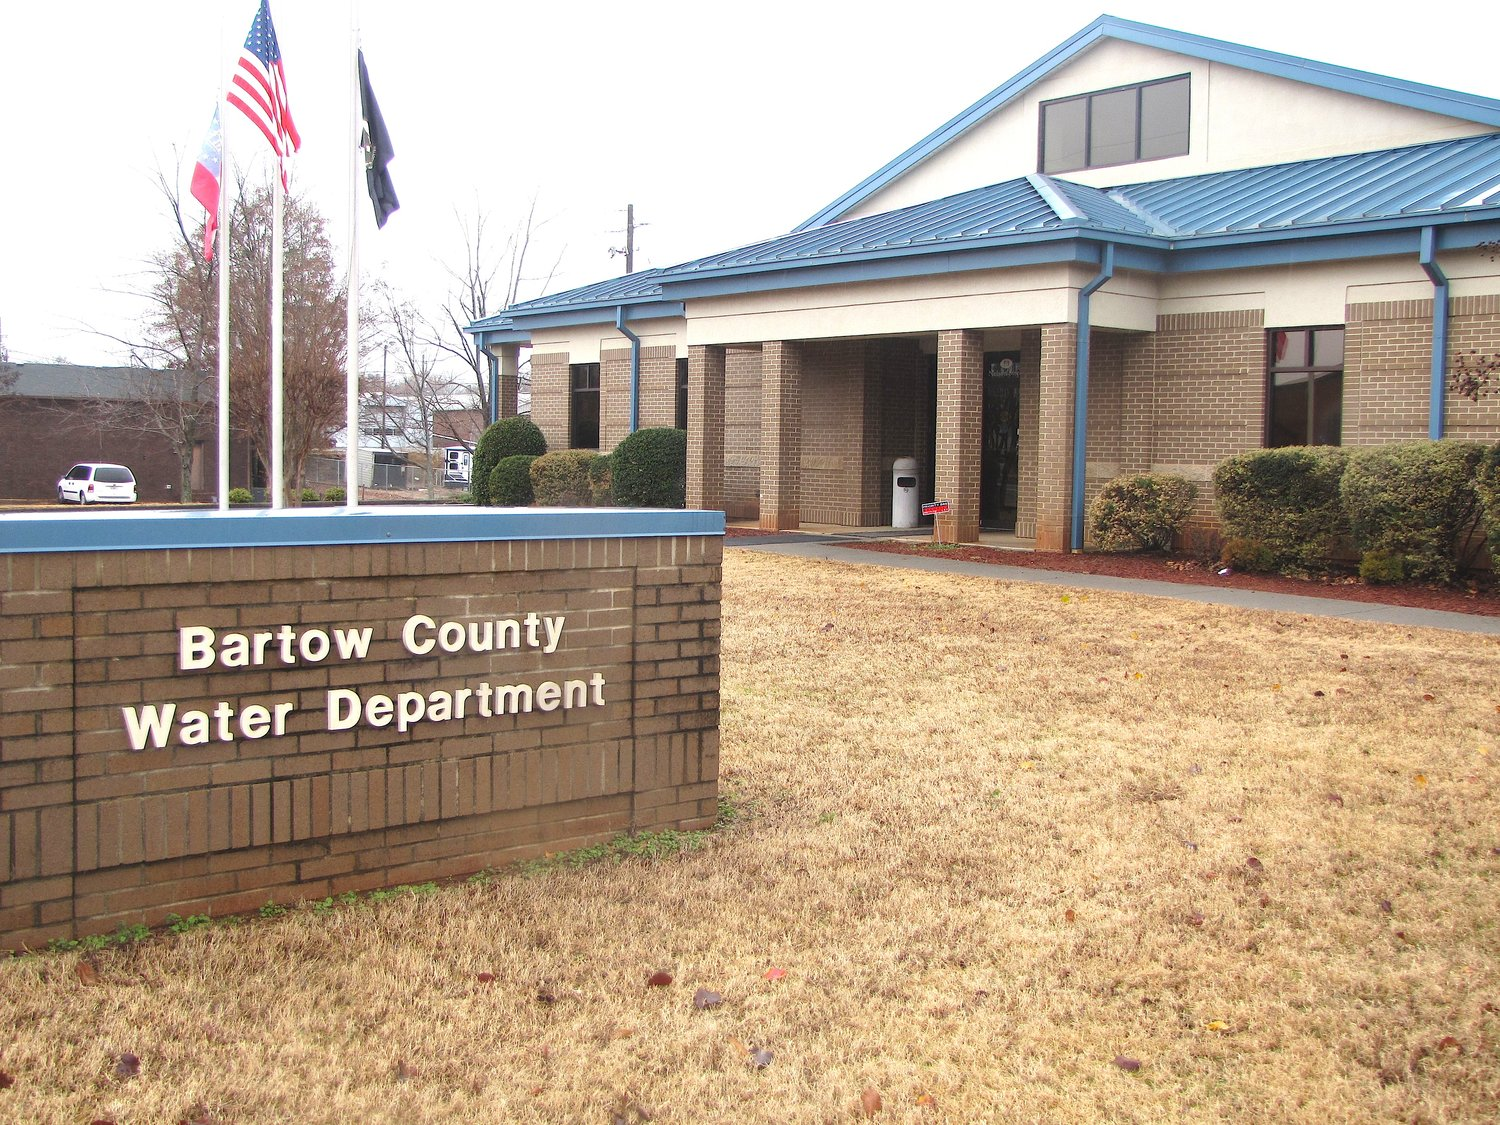 Bartow County is accepting bids for a water main project along Highway 411 until Jan. 10.